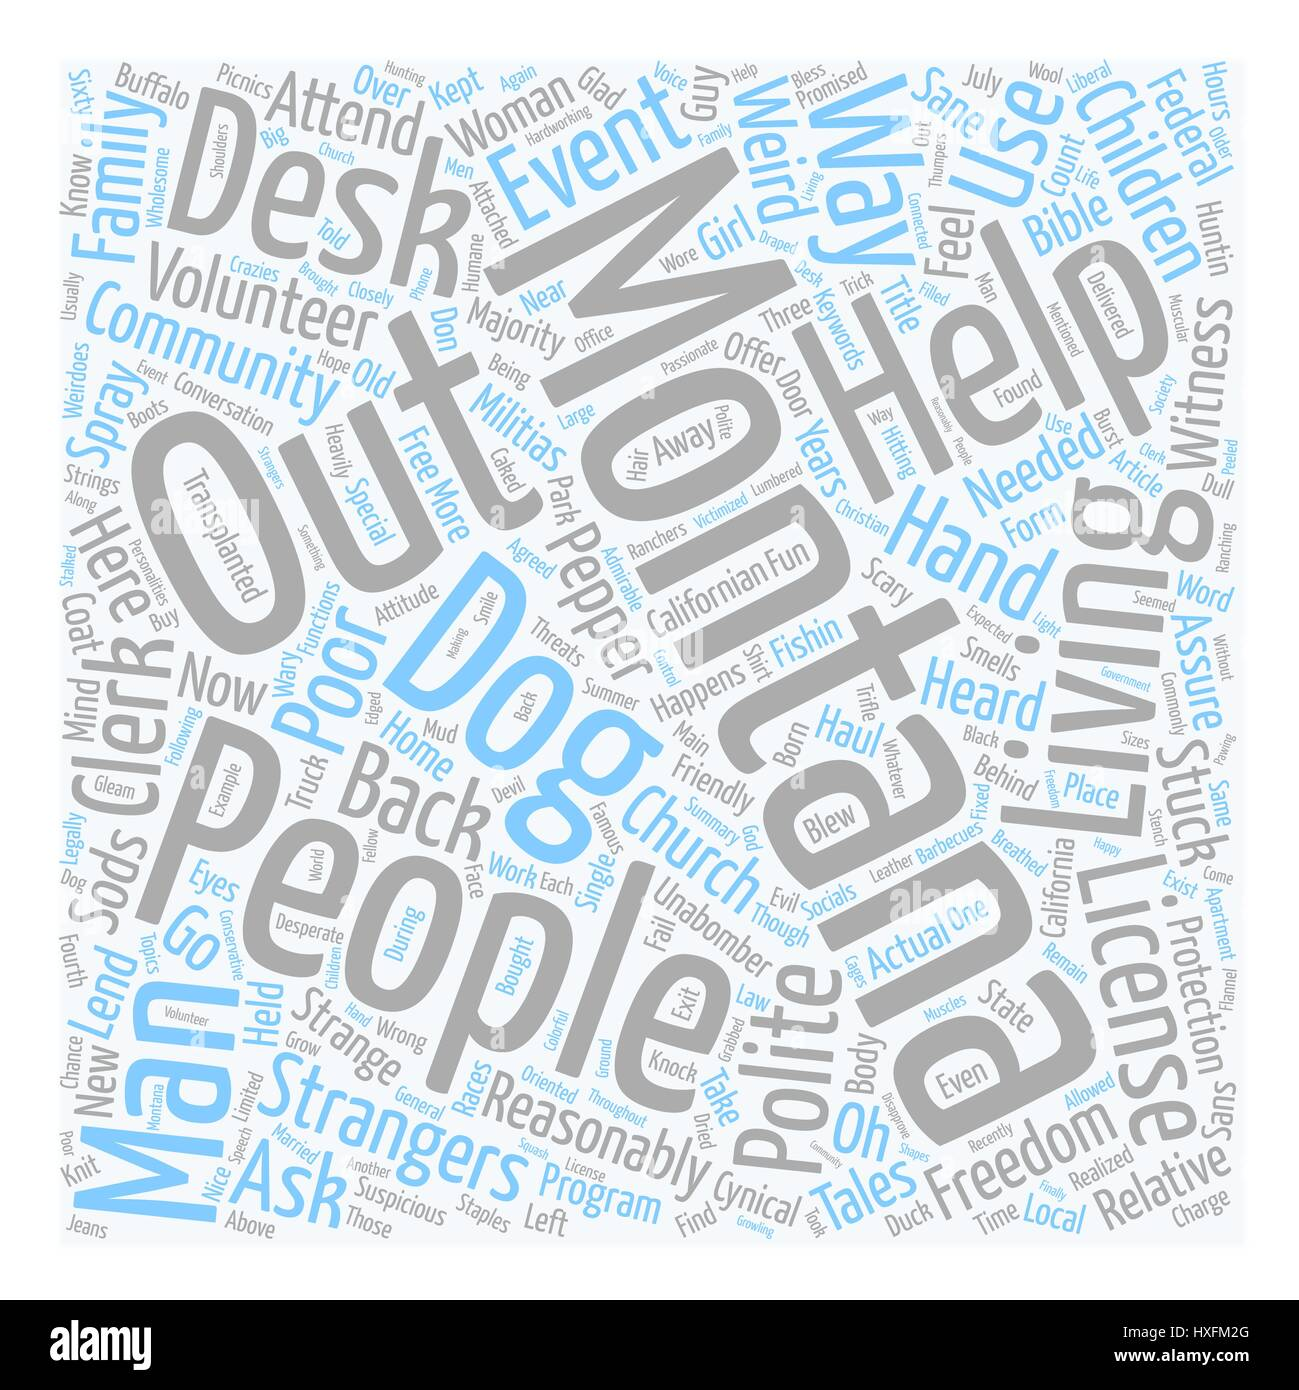 Montana People Weird In Their Own Special Way text background wordcloud concept - Stock Vector